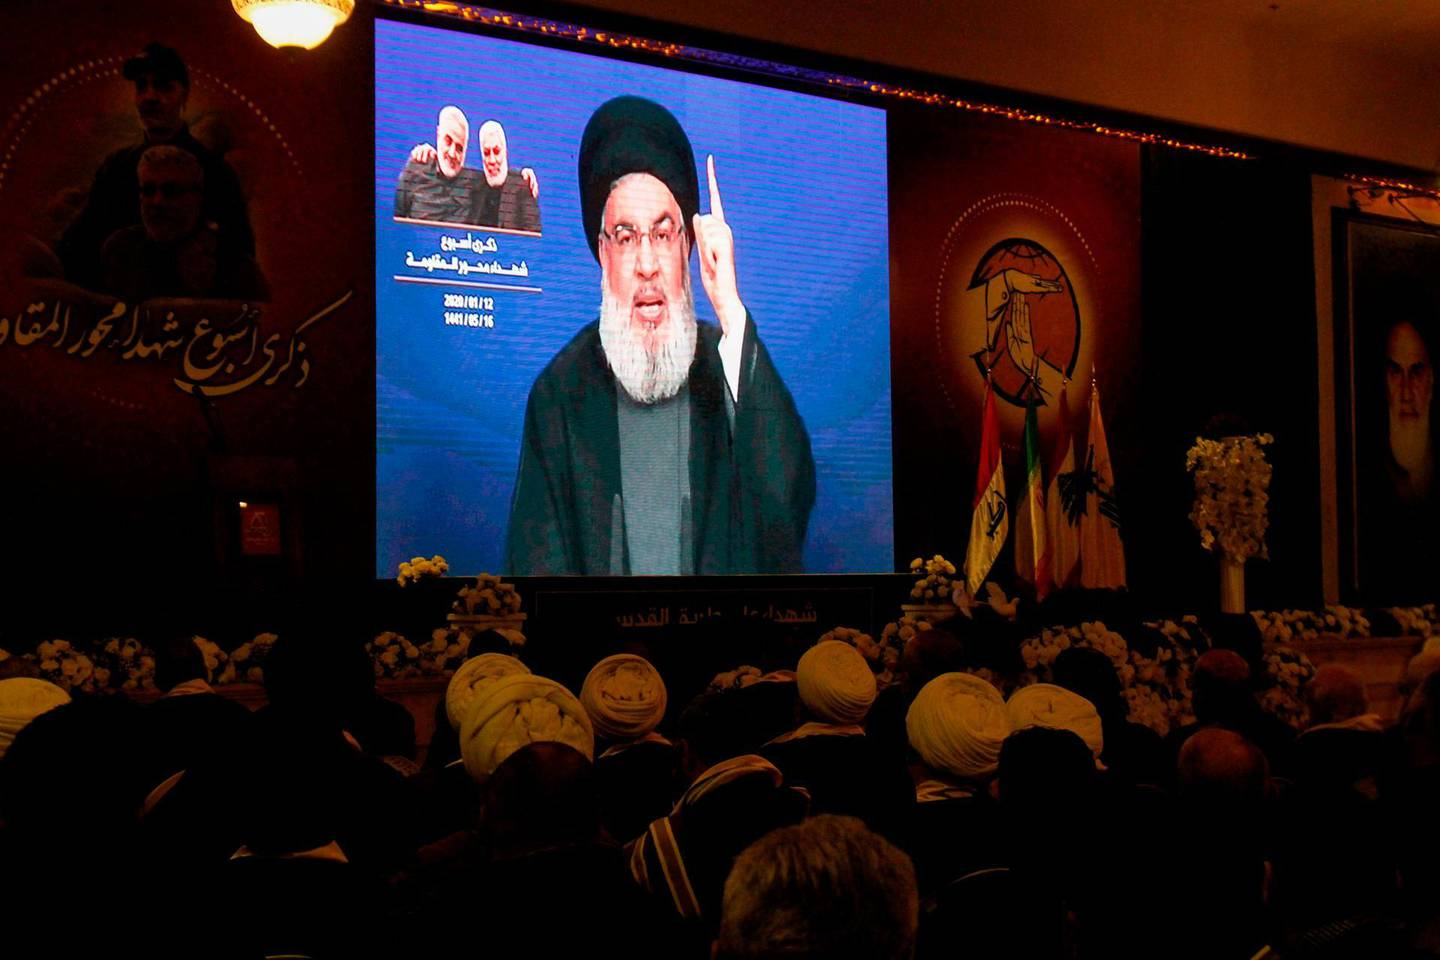 Supporters of the the Shiite Hezbollah movement watch as the movement's leader Hasan Nasrallah delivers a speech on a screen in the southern Lebanese city of Nabatieh on January 12, 2020.  / AFP / Mahmoud ZAYYAT